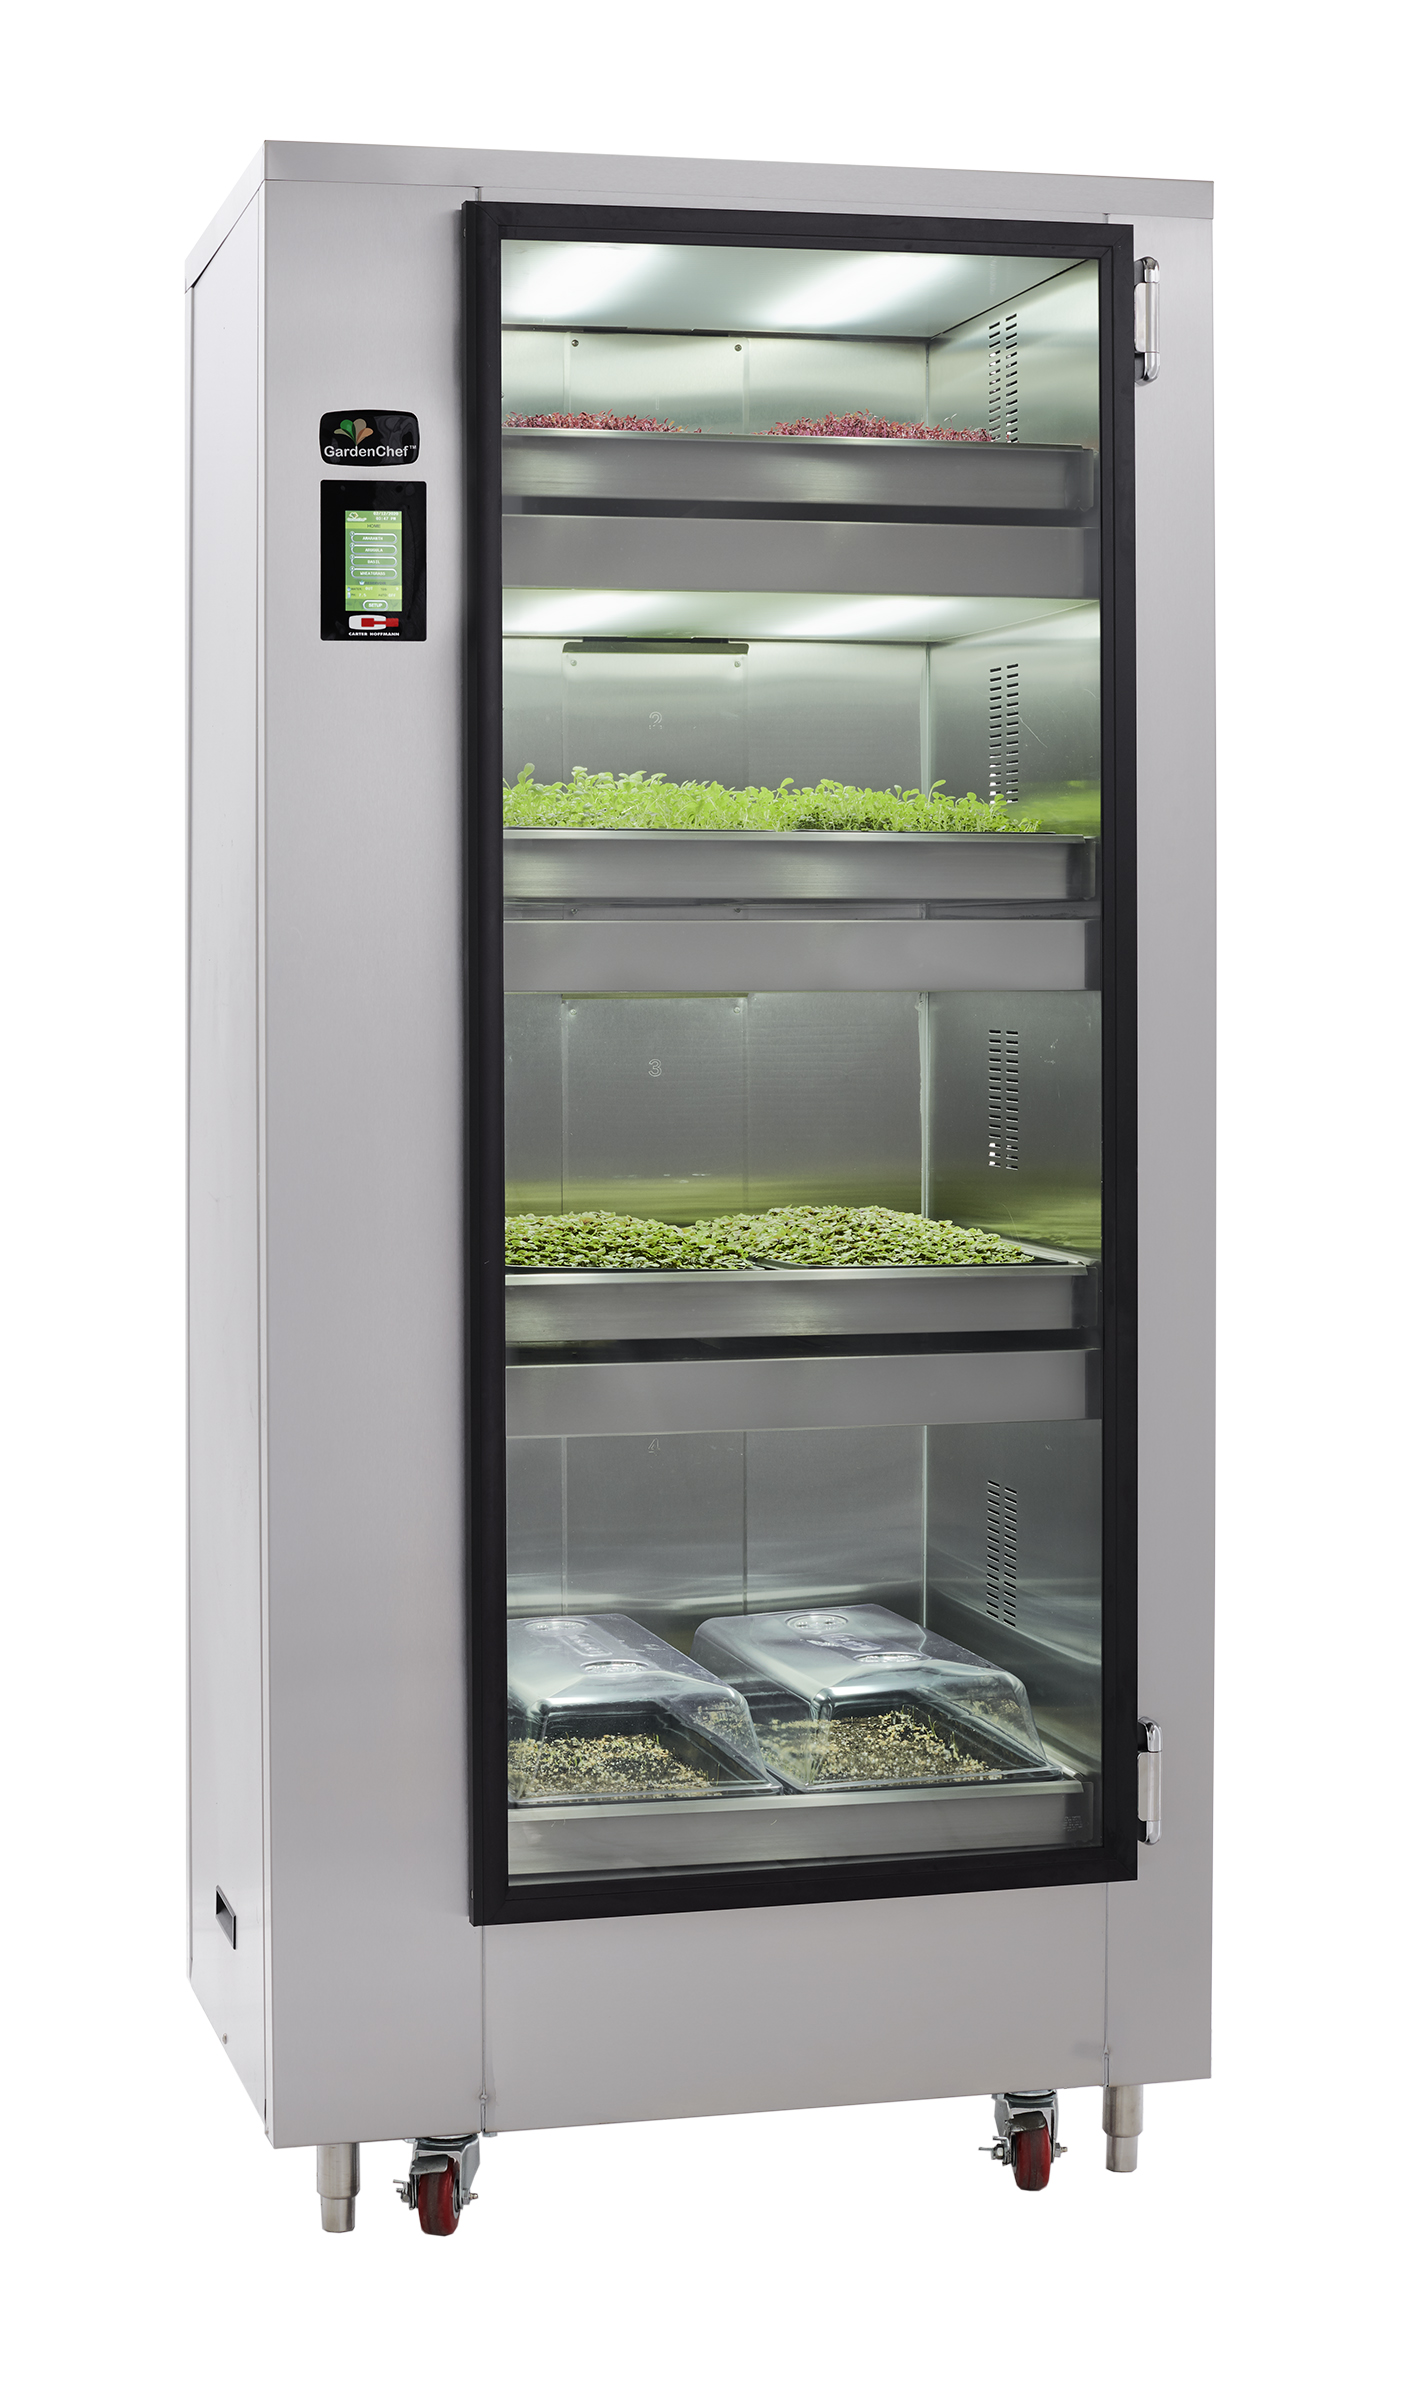 Carter-Hoffmann GC41 cabinet, growing